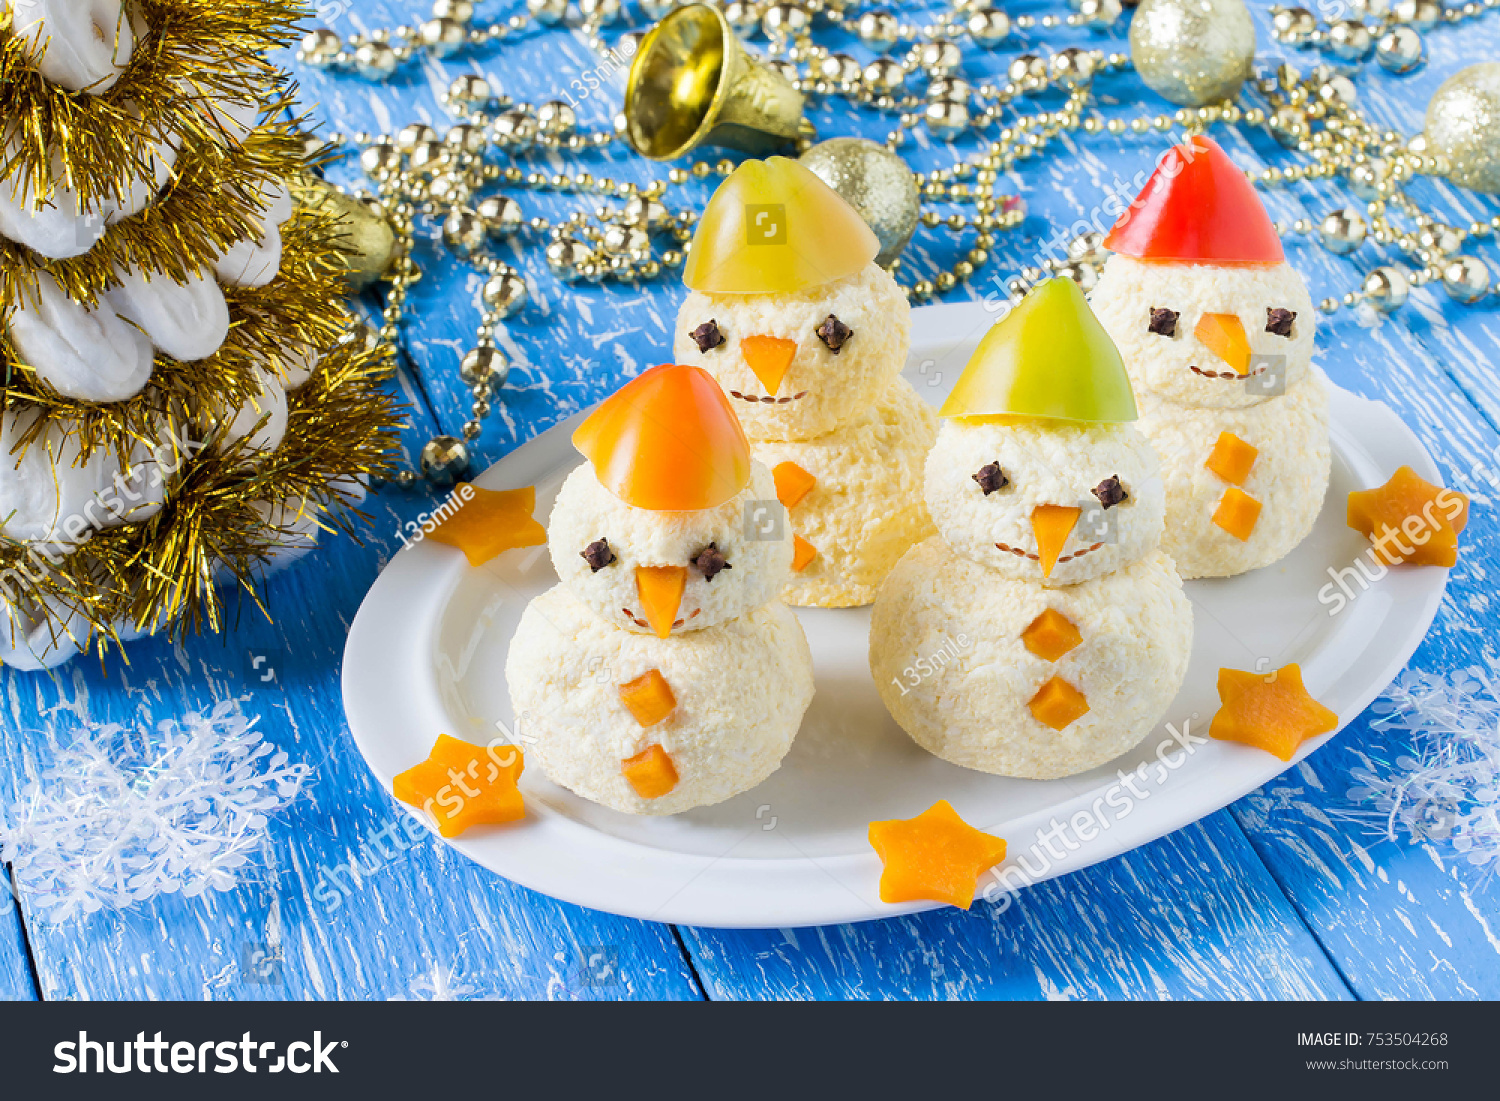 Original Christmas Party Ideas Part - 43: Idea For Christmas Party: Funny Snowmen From Cheese And Sweet Pepper On  Plate. Original